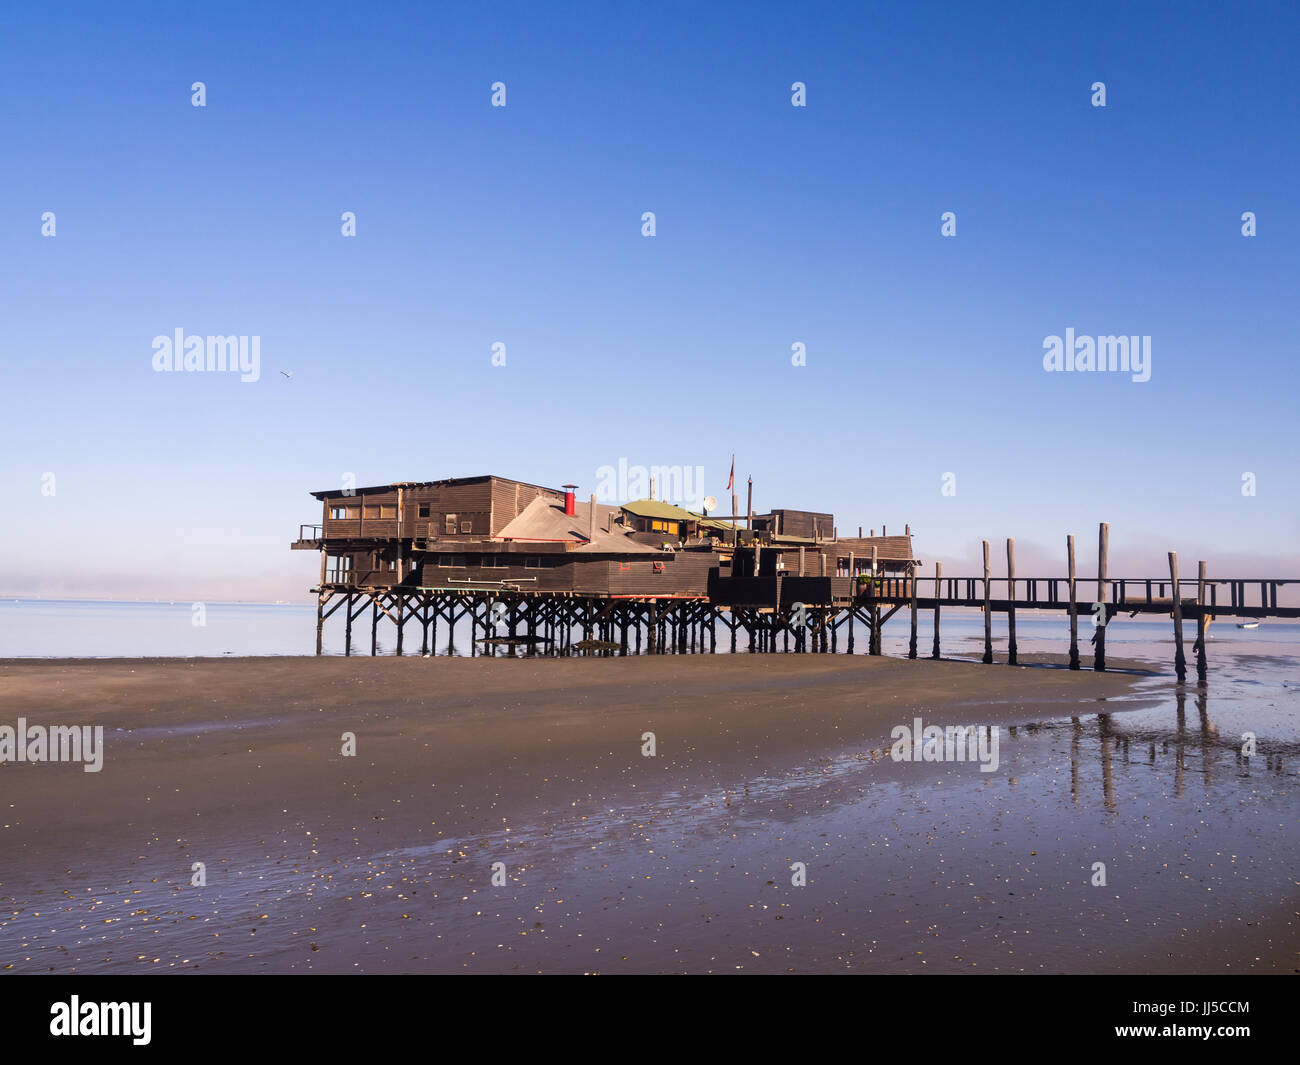 The Raft restaurant in Walvis Bay, Namibia, shortly after sunrise. Stock Photo